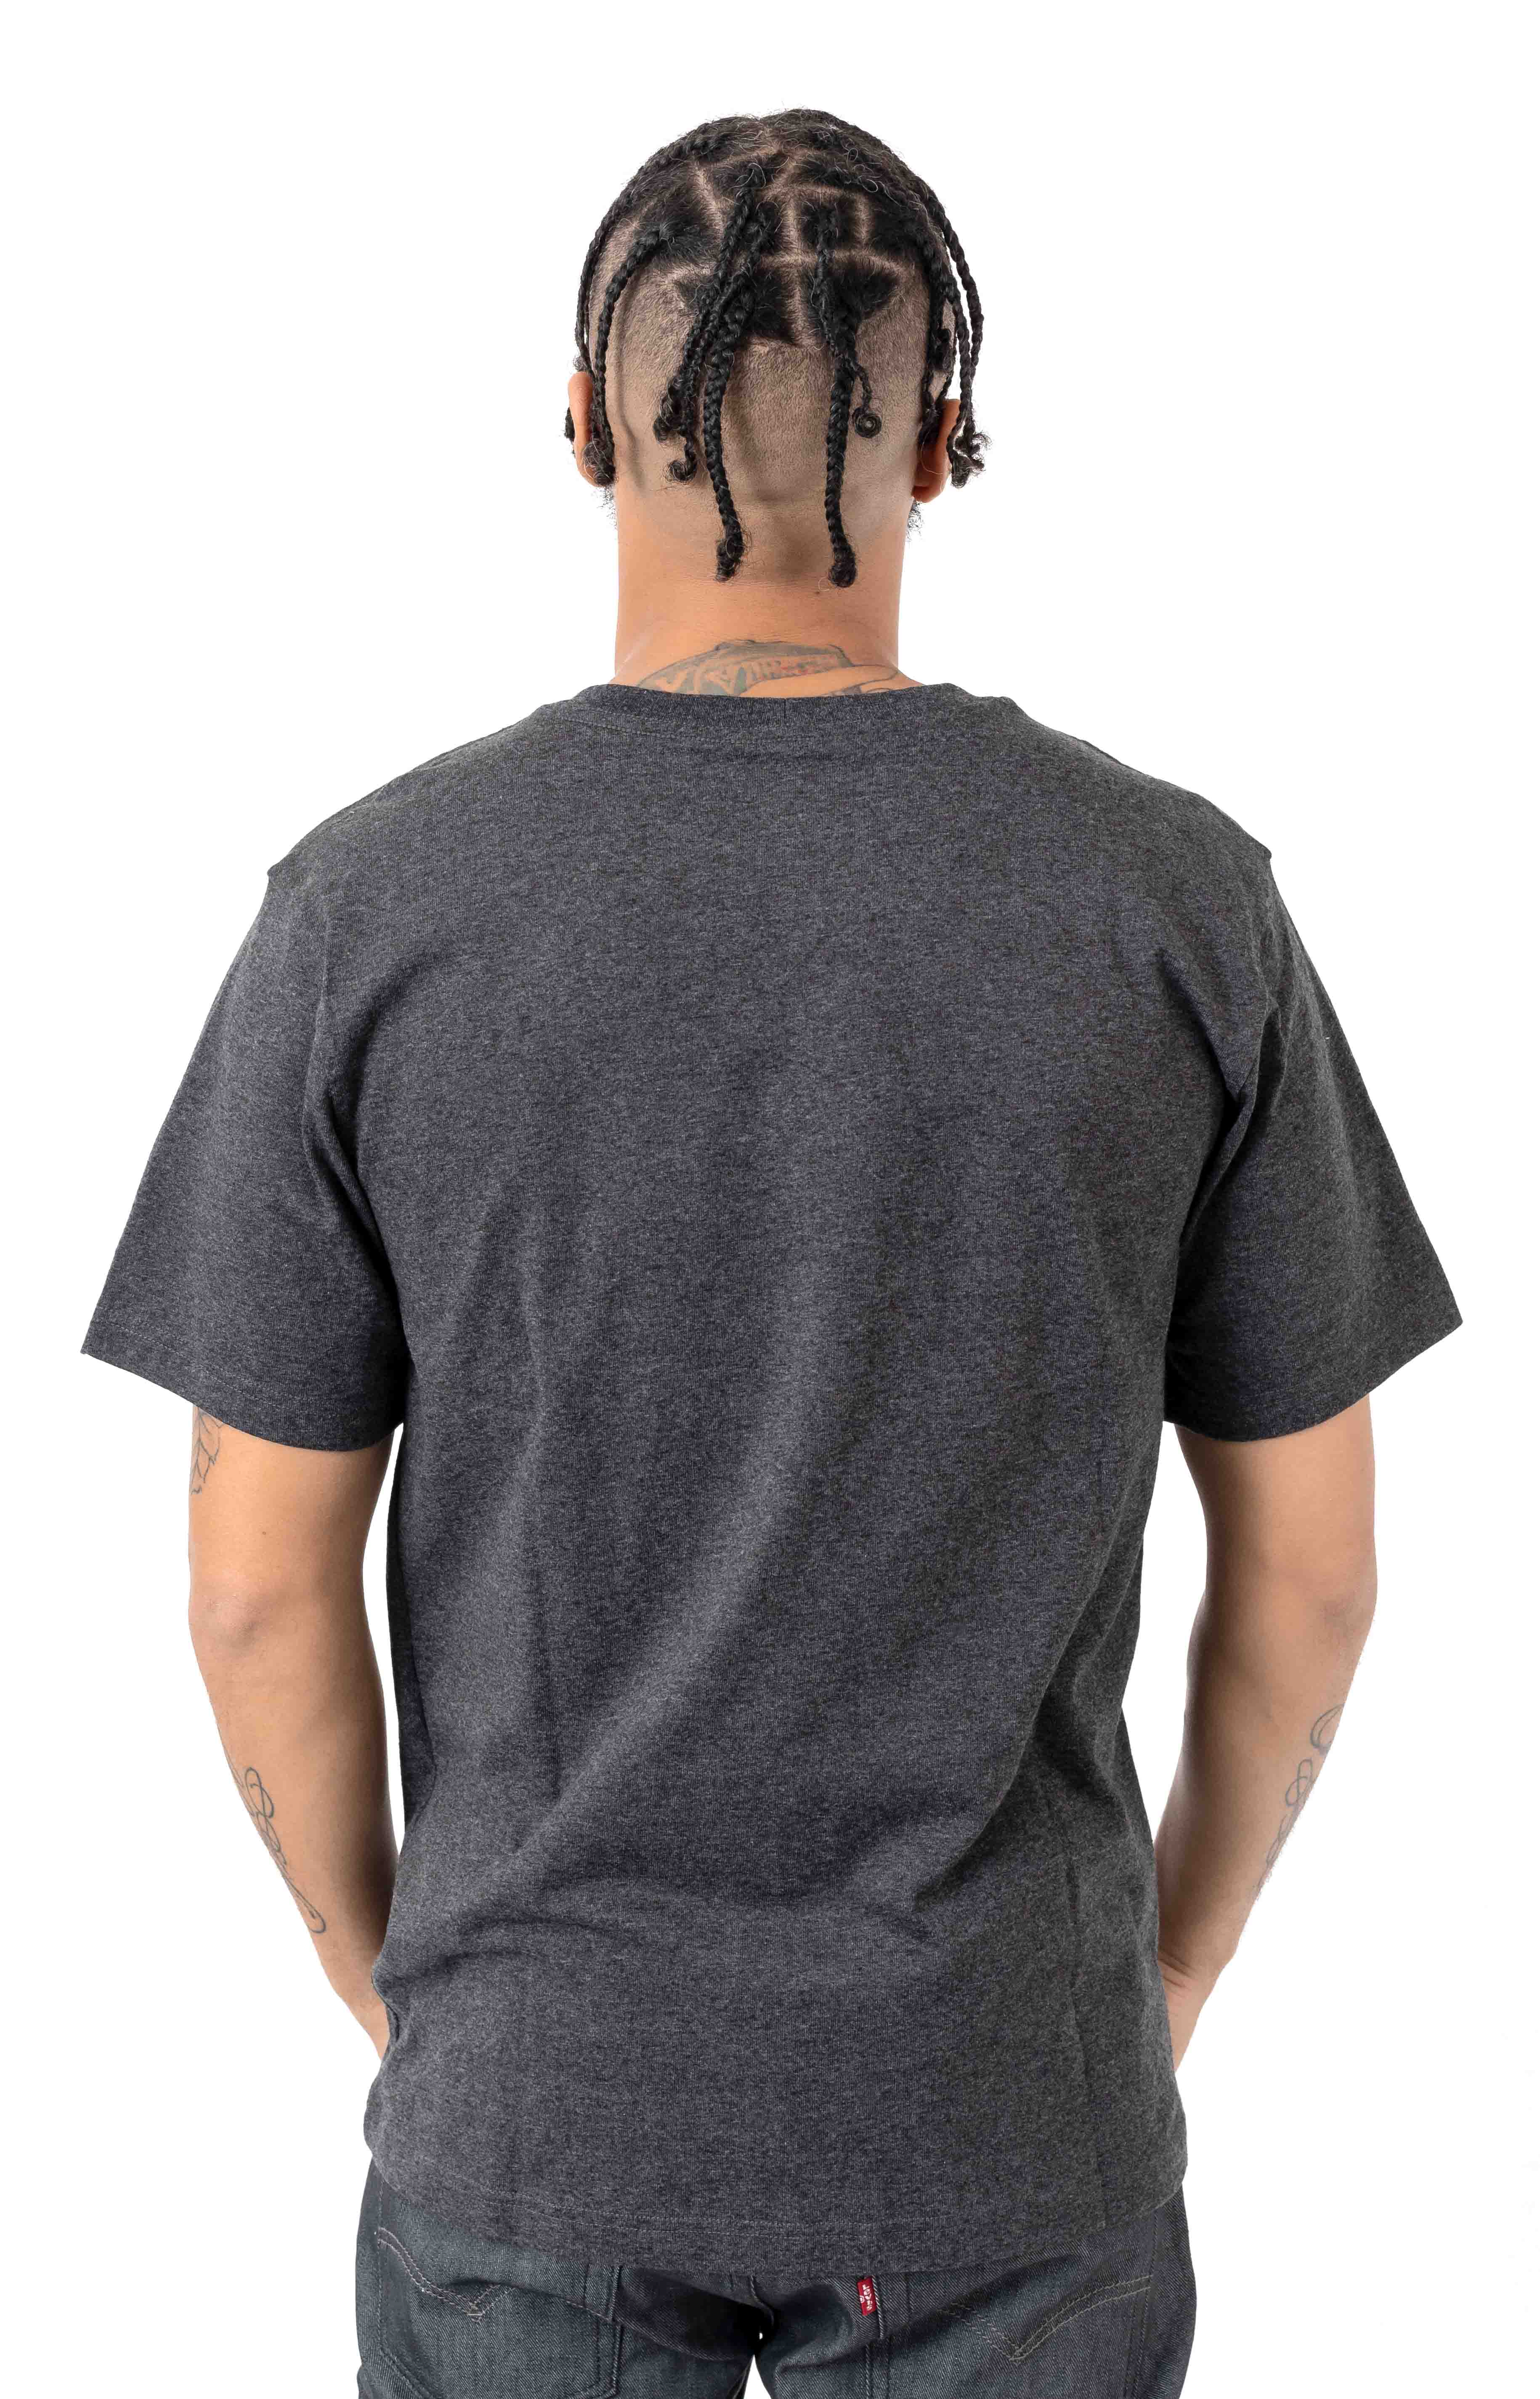 (104180) TK178-M Relaxed Fit HW Pocket Stripe Graphic T-Shirt - Carbon Heather  3